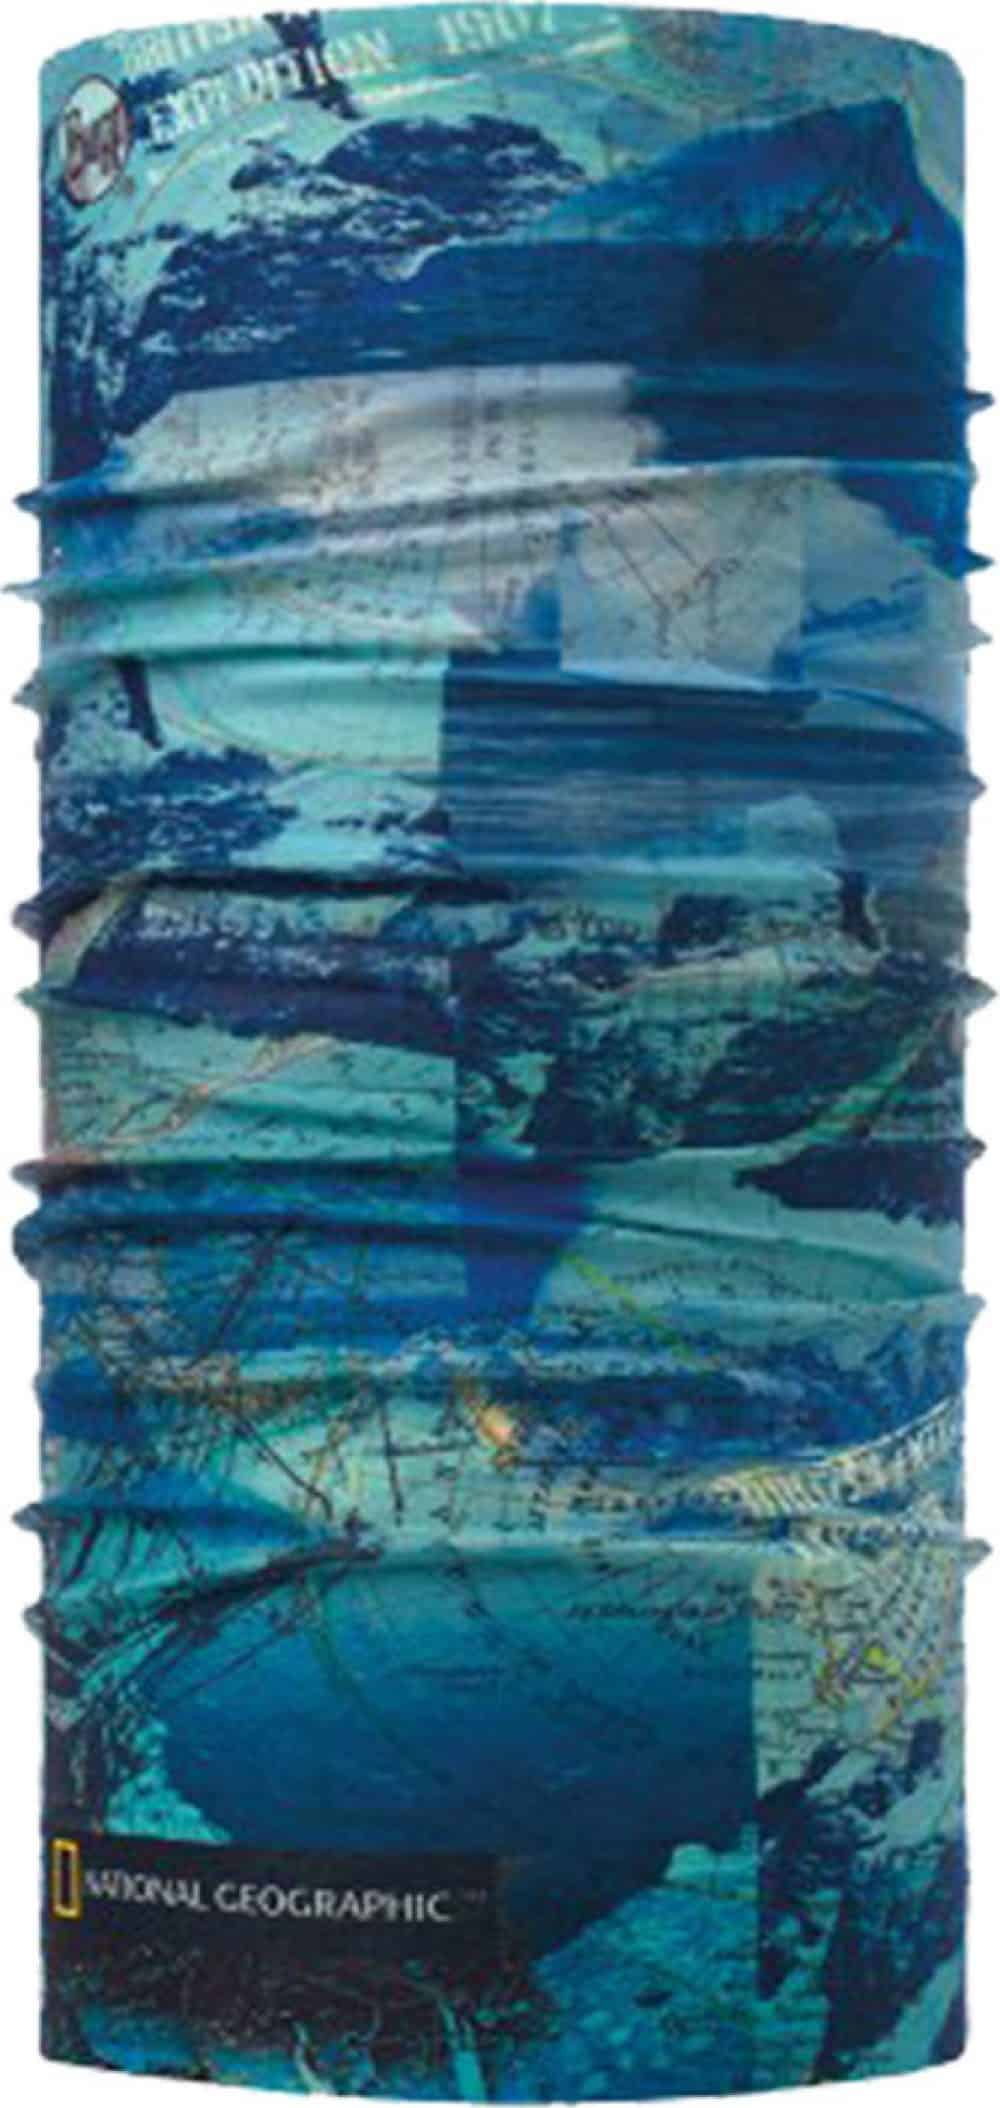 Studio photo of Original Buff® National Geographic collection design Antarctic Ocean Blue. Source: buff.eu